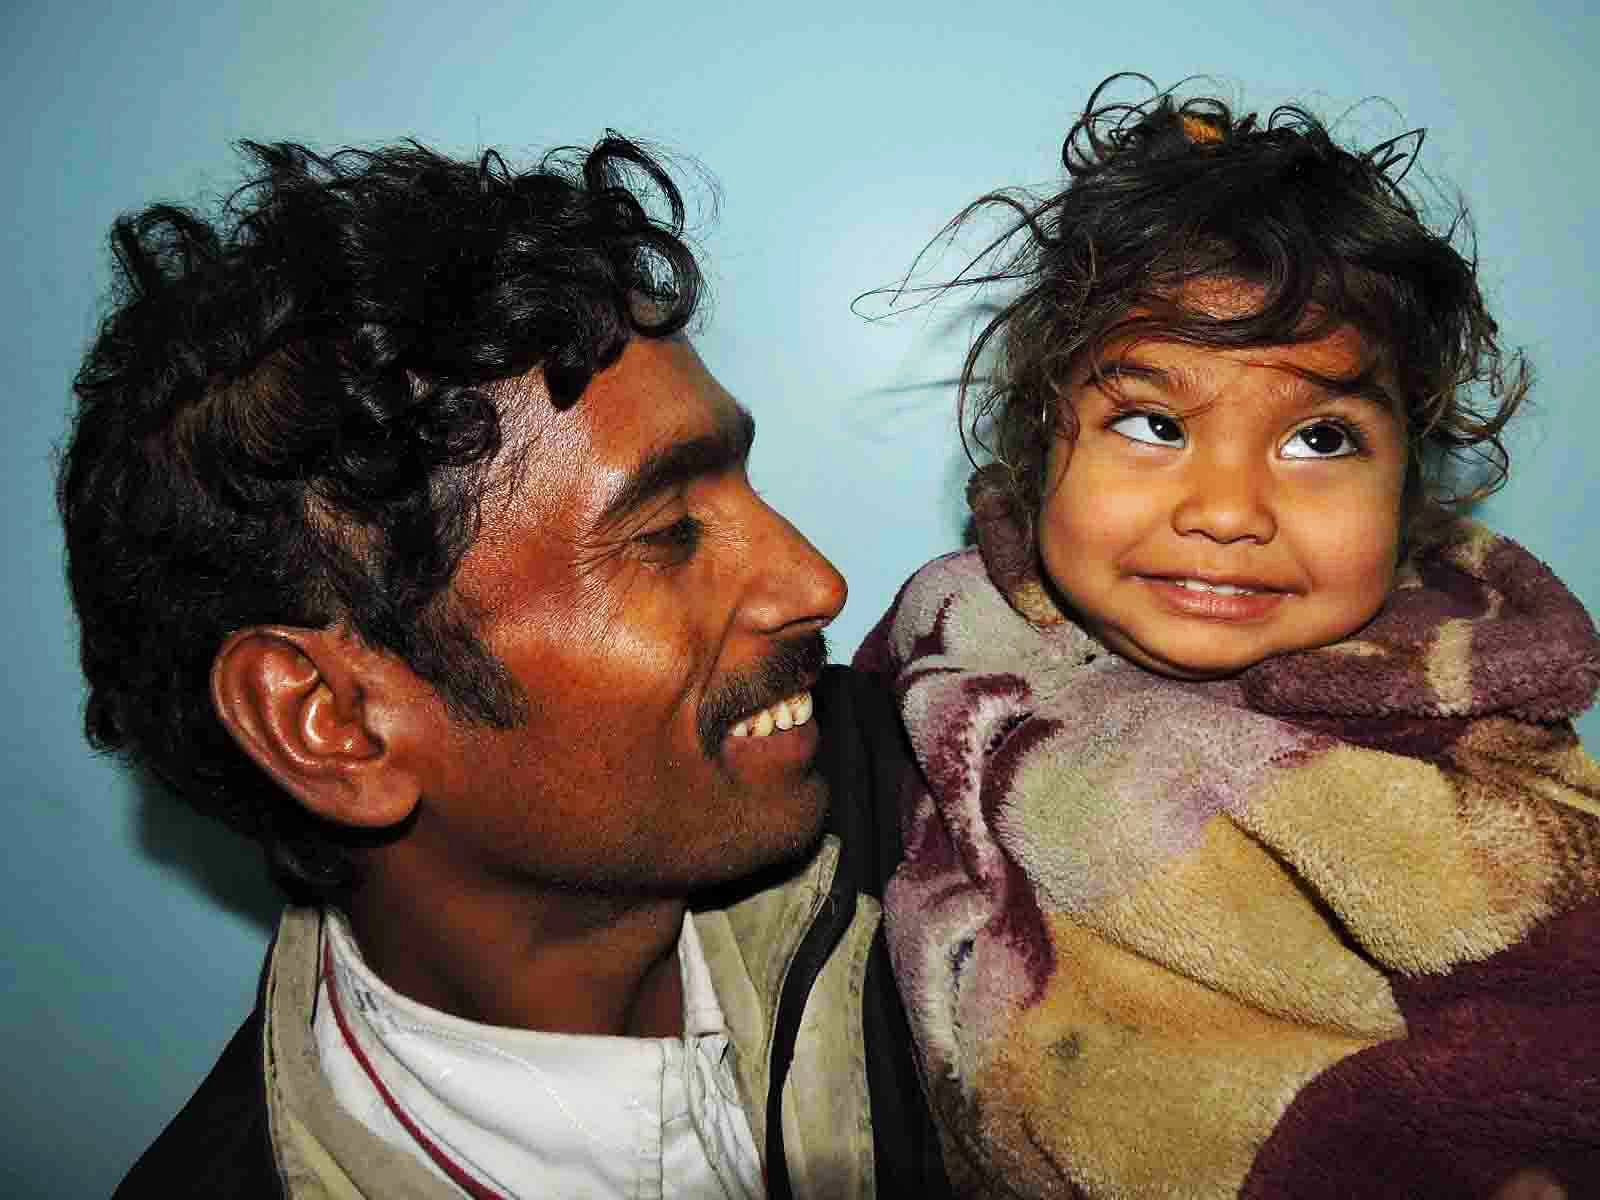 2-year-old Kanika, a beneficiary of the Akhand Jyoti Eye Hospital